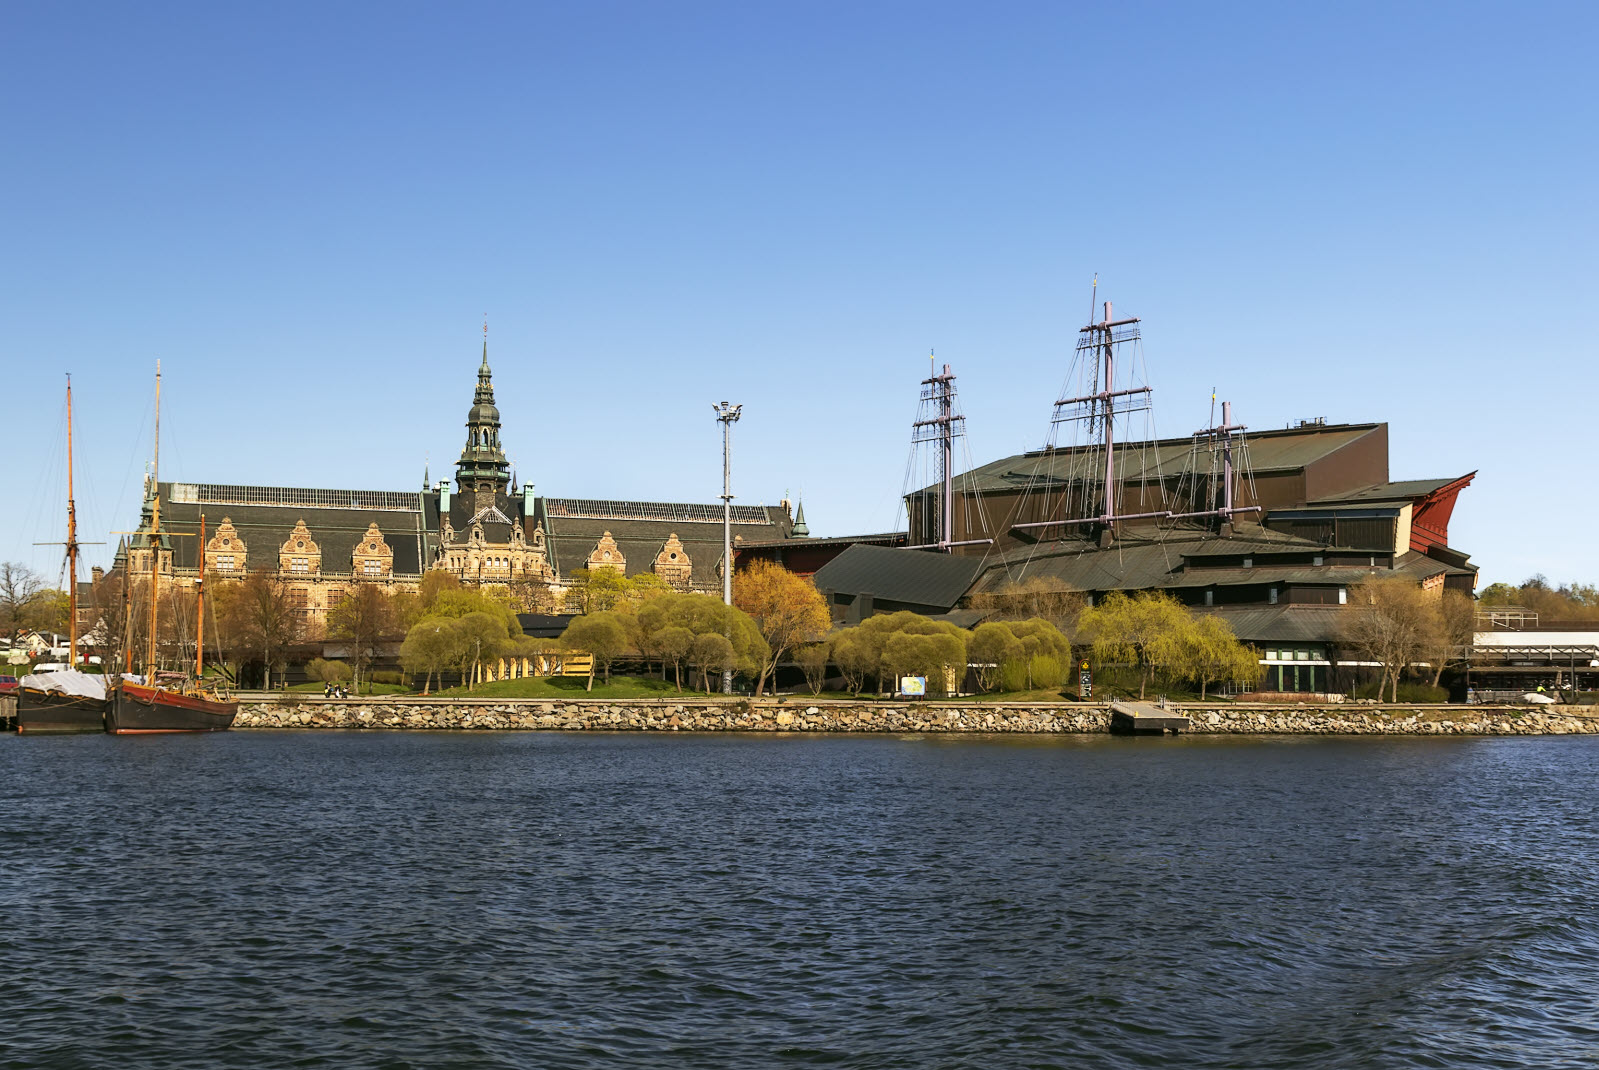 8673110-nordic-and-vasa-ship-museums-stockholm.jpg